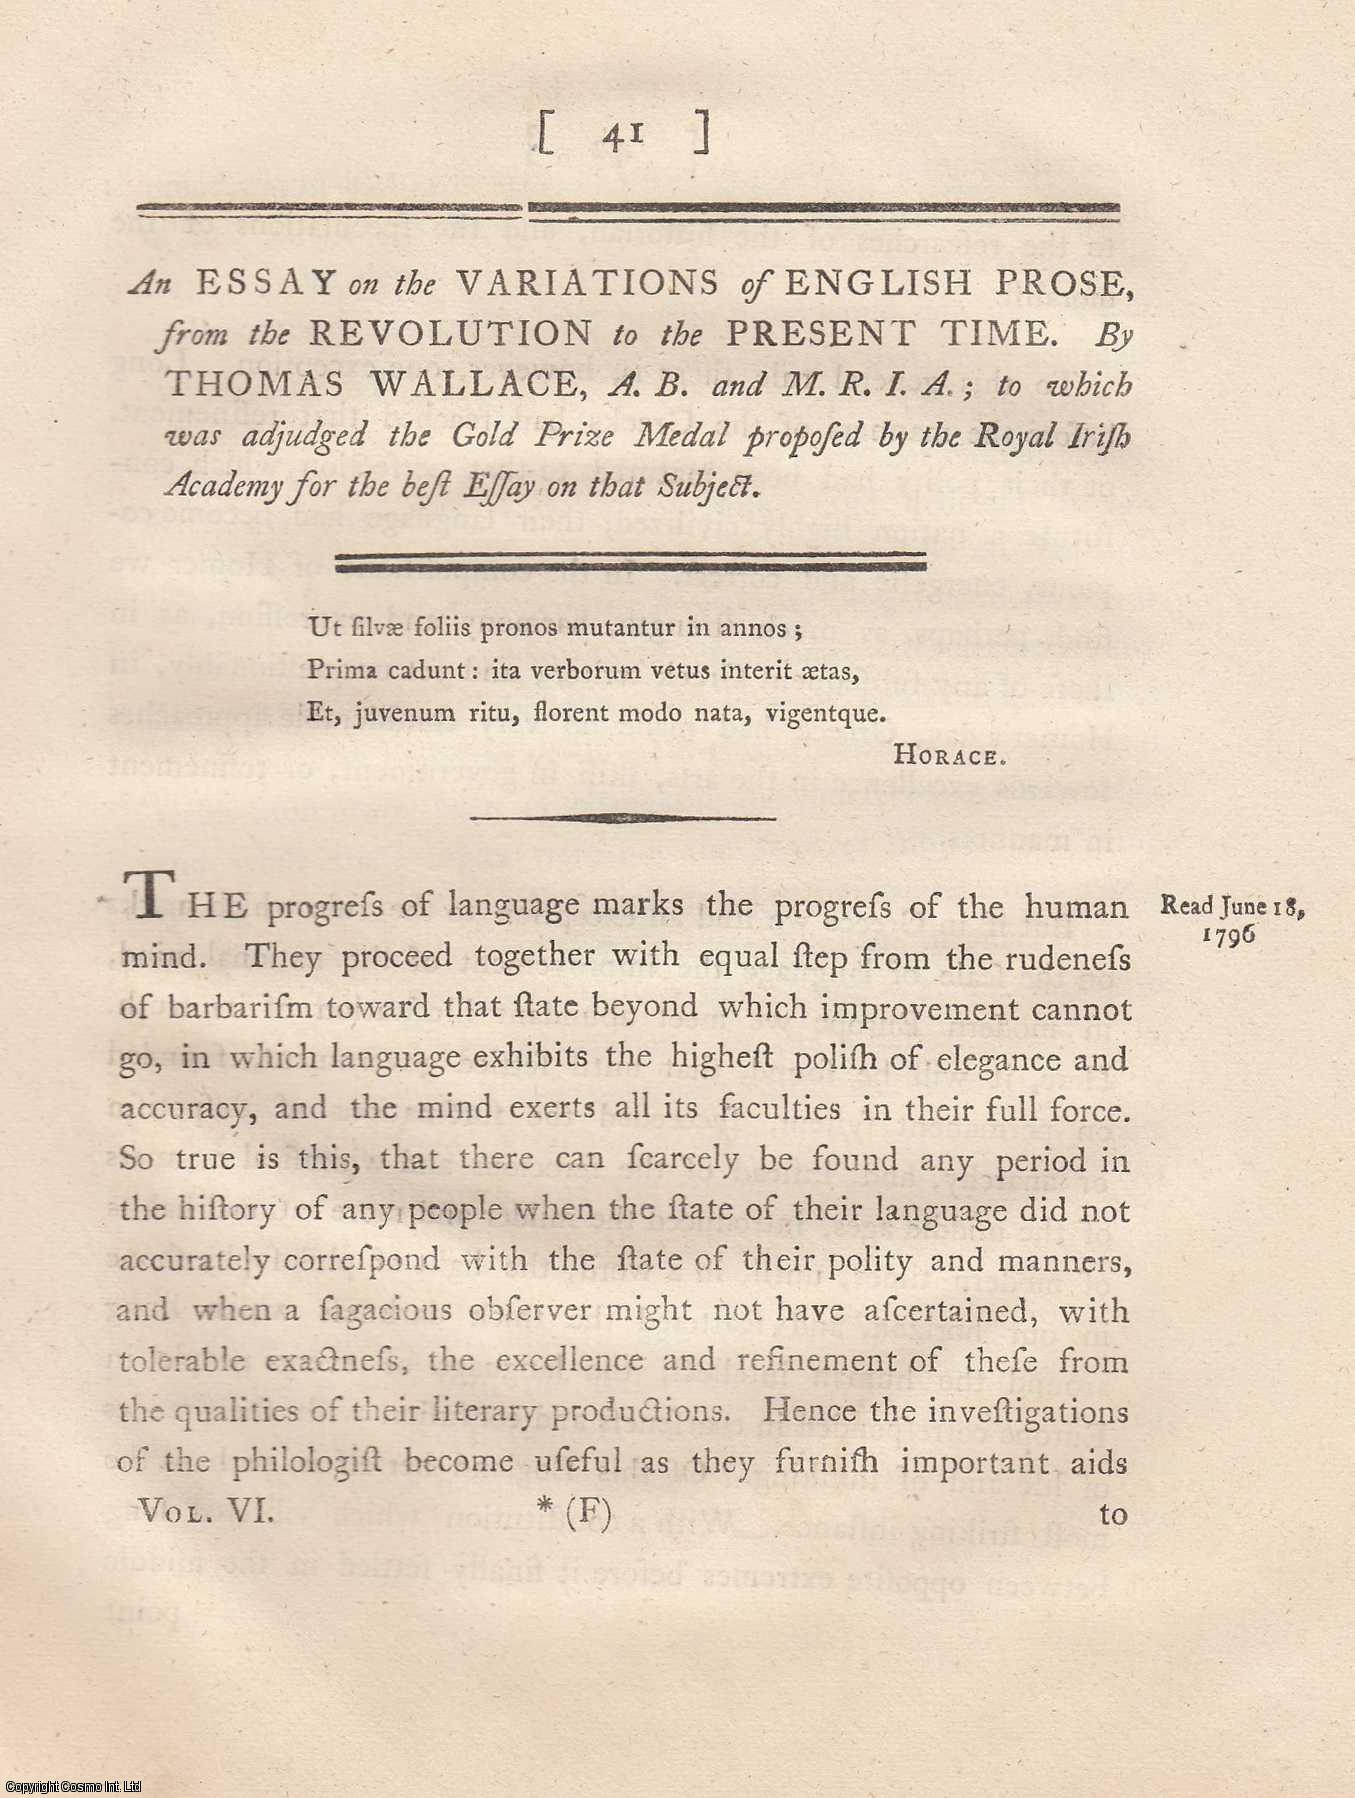 An Essay on the Variations of English Prose, from the Revolution to the Present Time. From Transactions of the Royal Irish Academy., Wallace, Thomas.